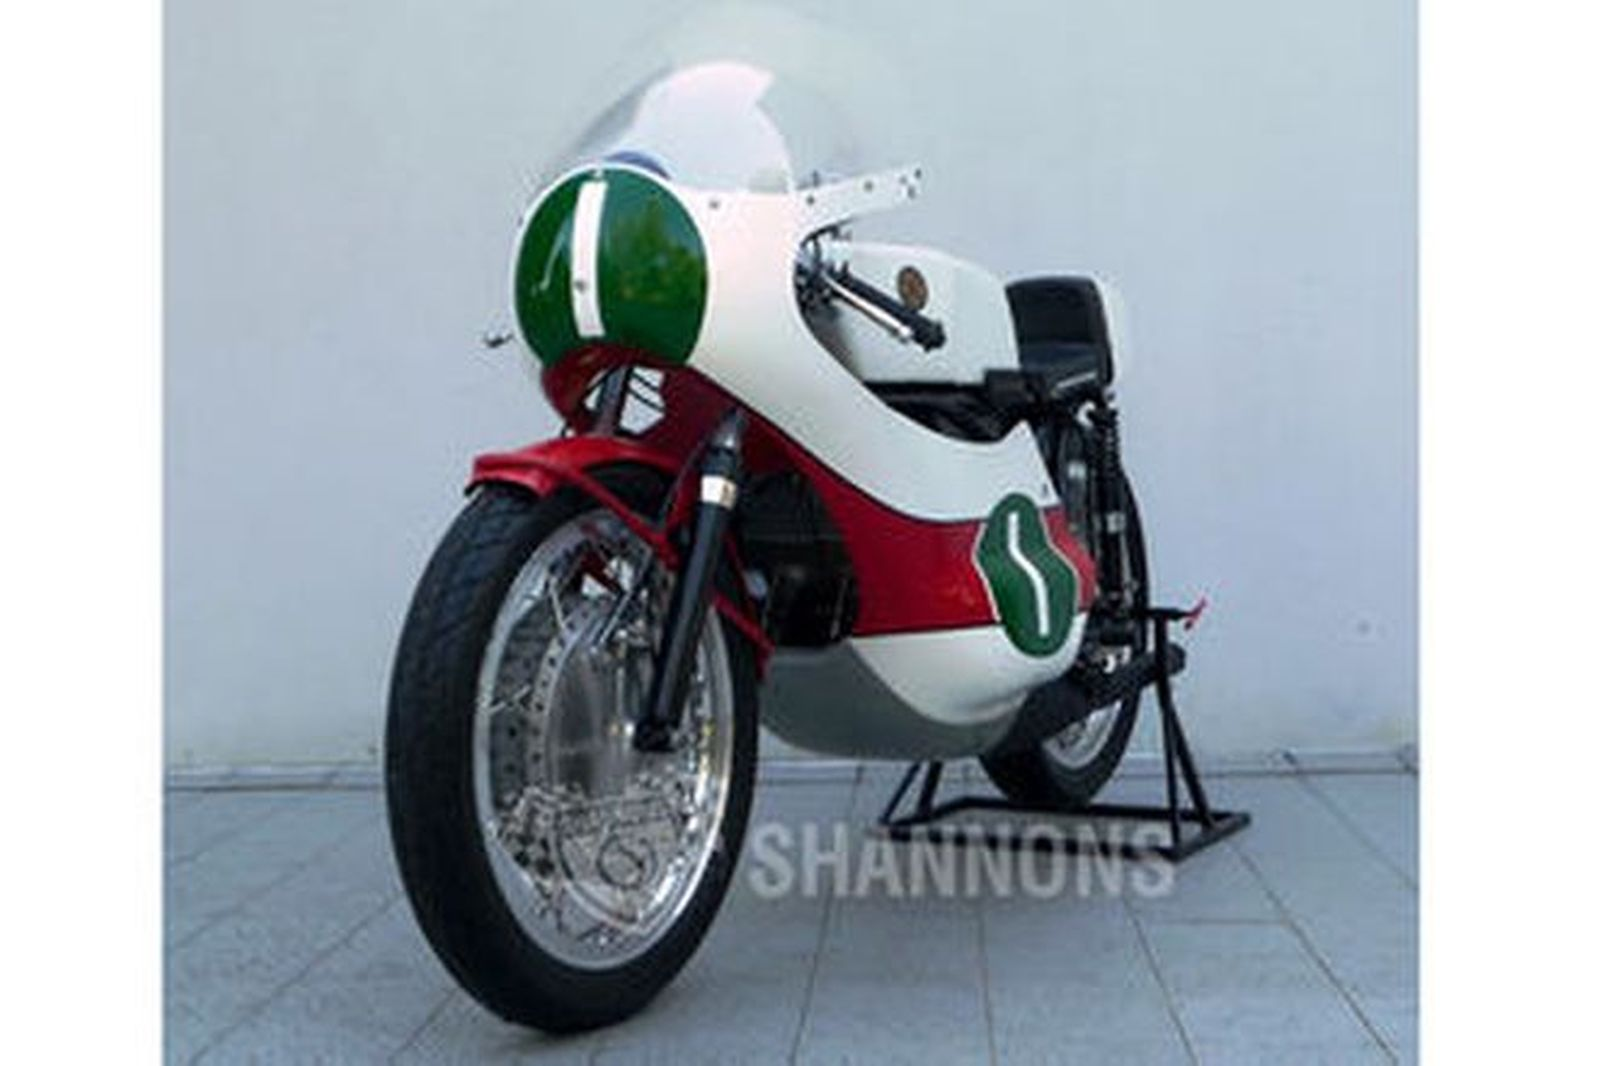 Yamaha TD2 250cc Production Racing Motorcycle